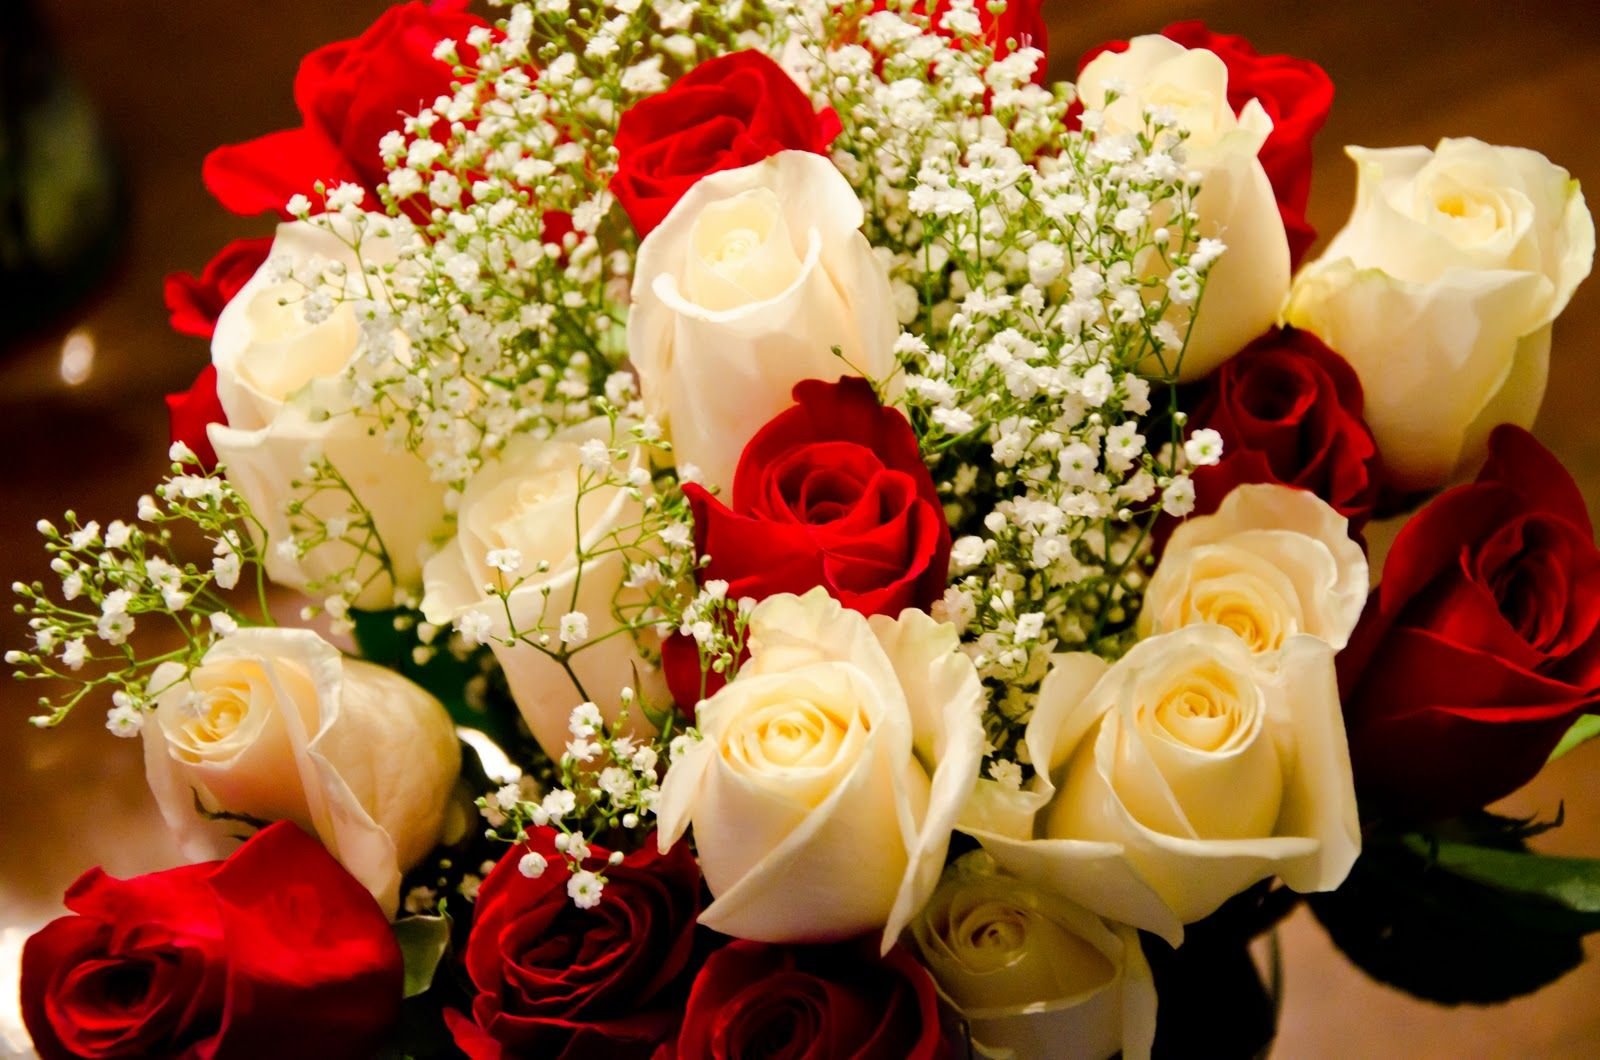 Happy birthday flowers roses httphappybirthdaywishesonline happy birthday flowers roses httphappybirthdaywishesonline izmirmasajfo